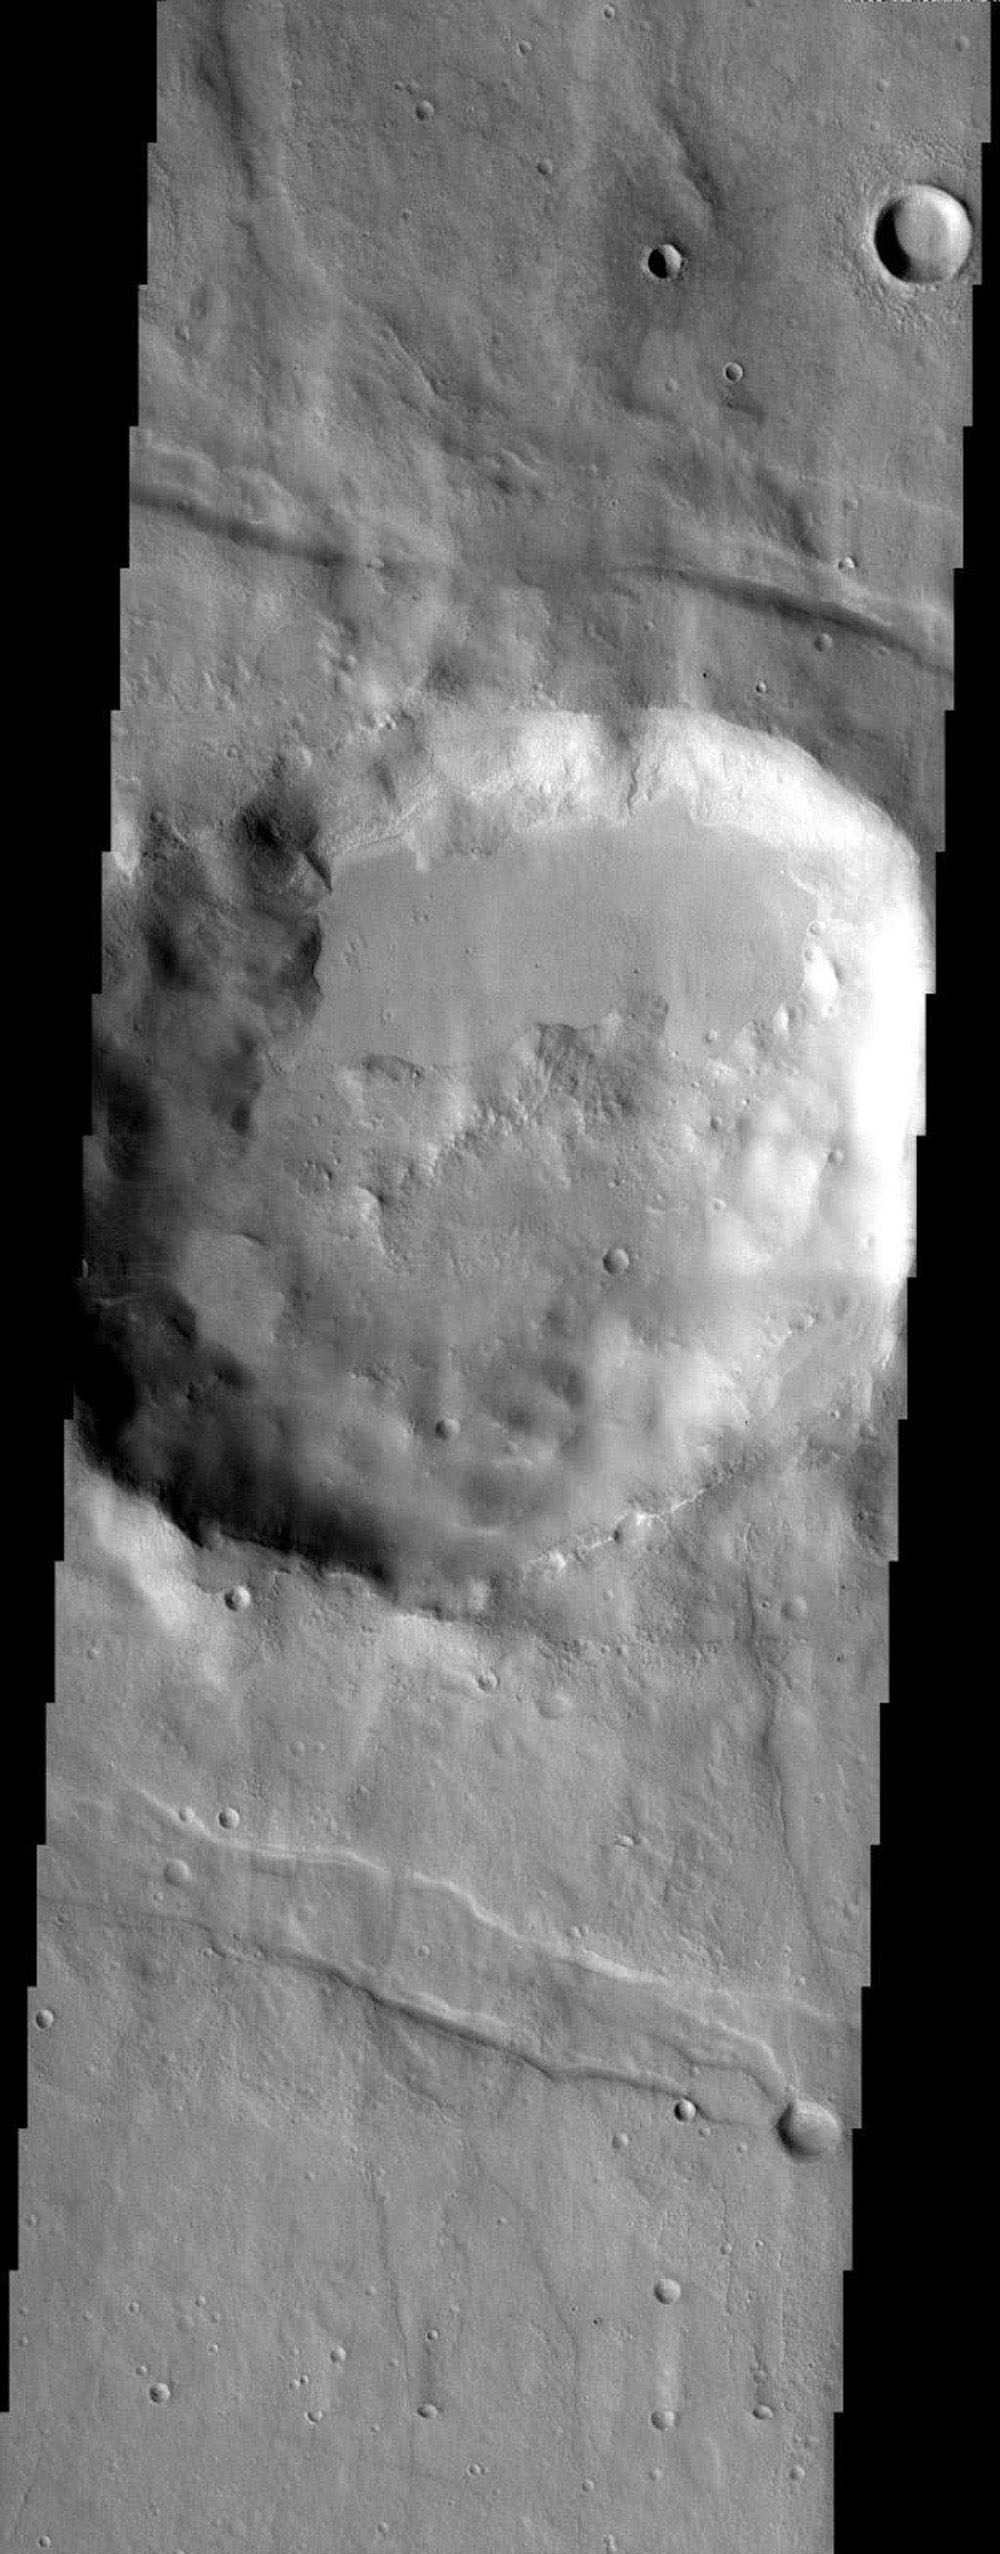 NASA's Mars Odyssey spacecraft captured this image in August 2003, showing a crater on Mars in the rugged Thaumasia uplands surrounding Solis Lacus containing an unusual filling of smooth material ramped up against the crater rim.